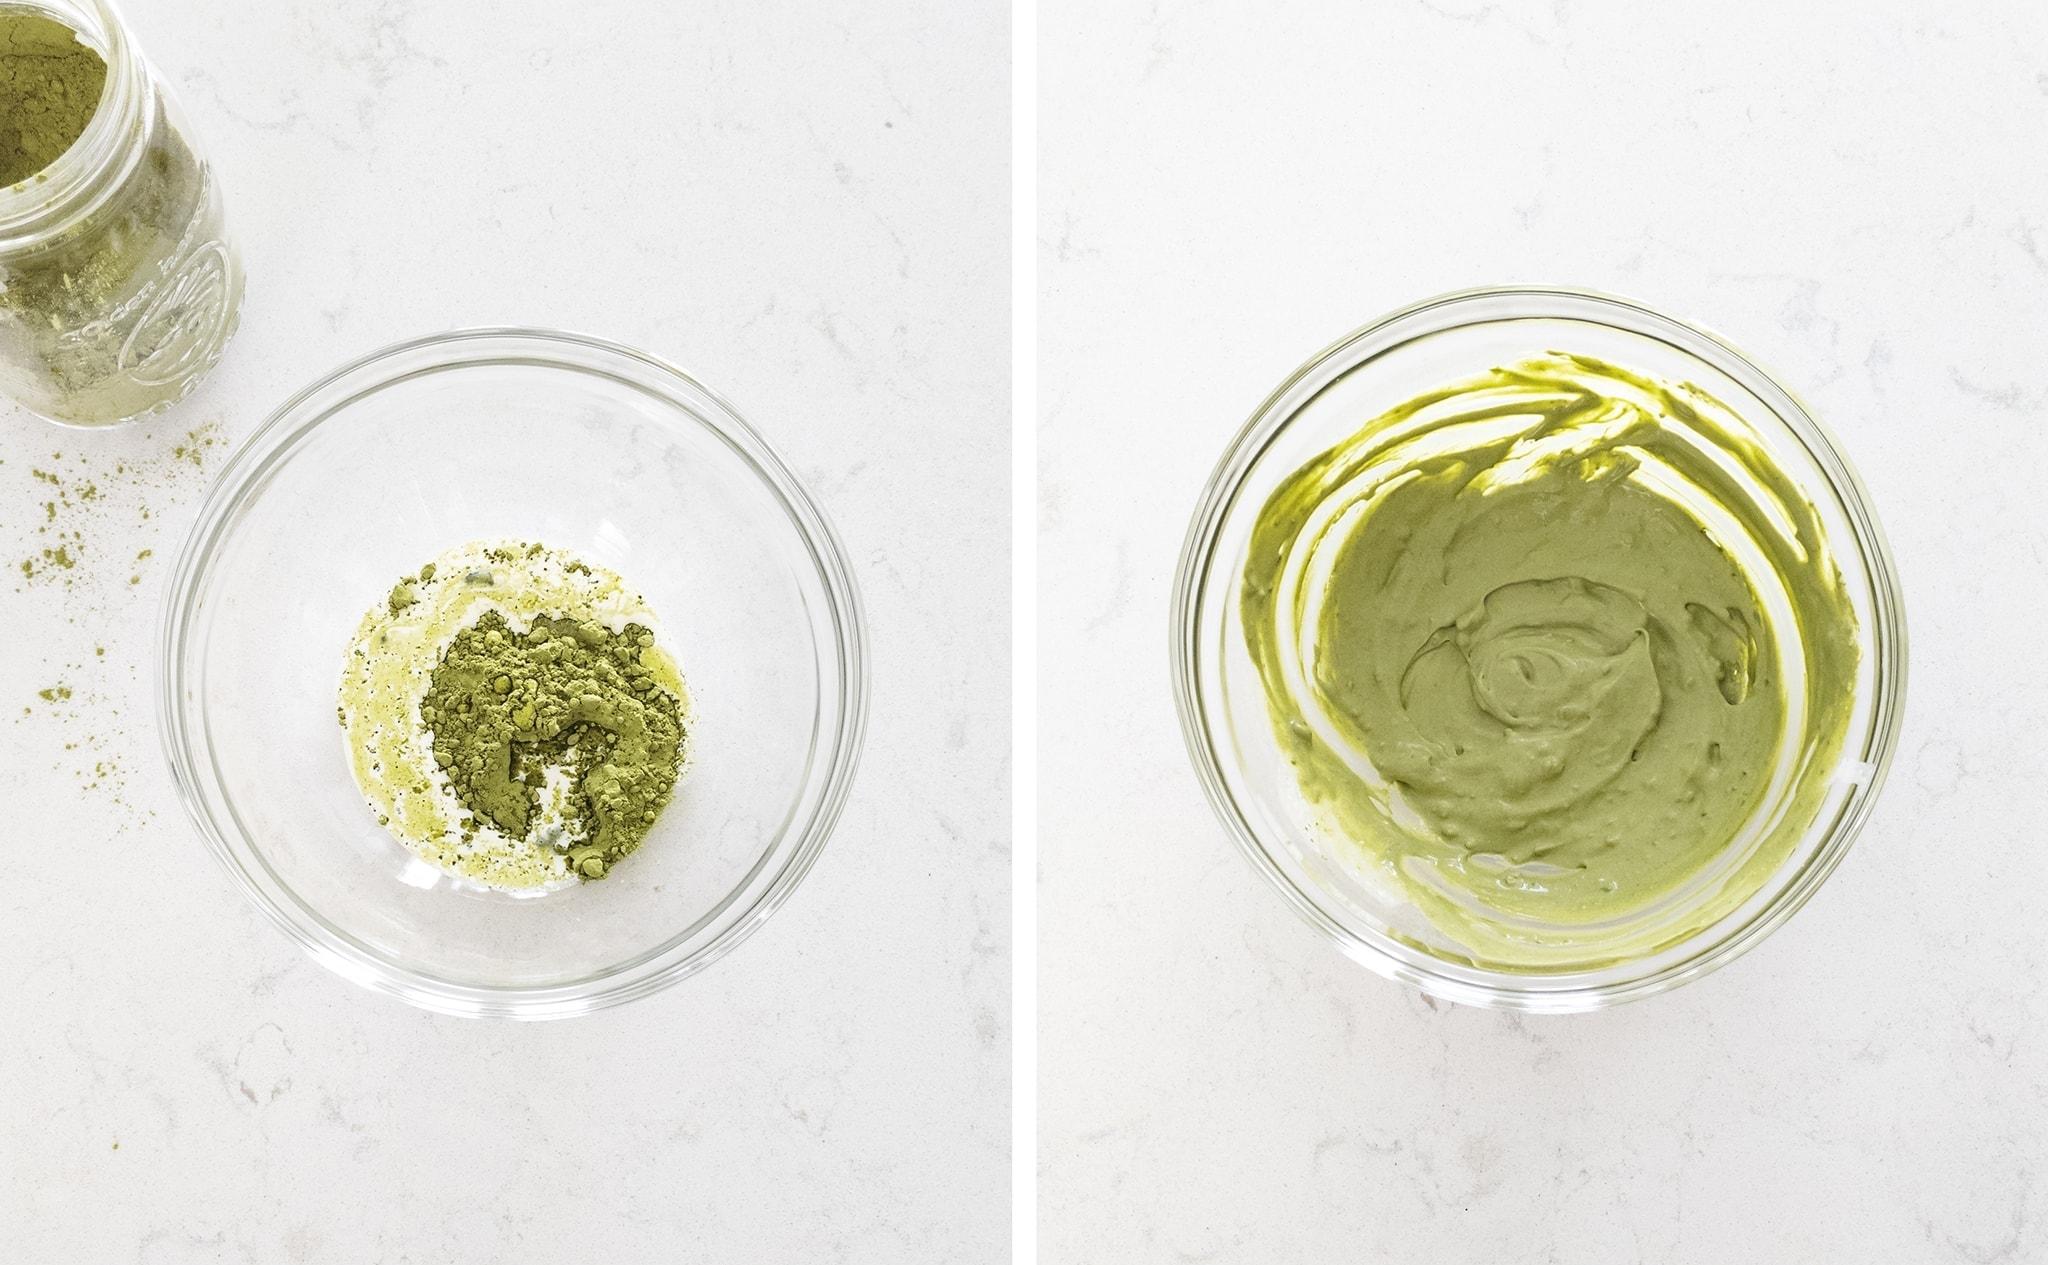 Mixing matcha powder with whipped cream